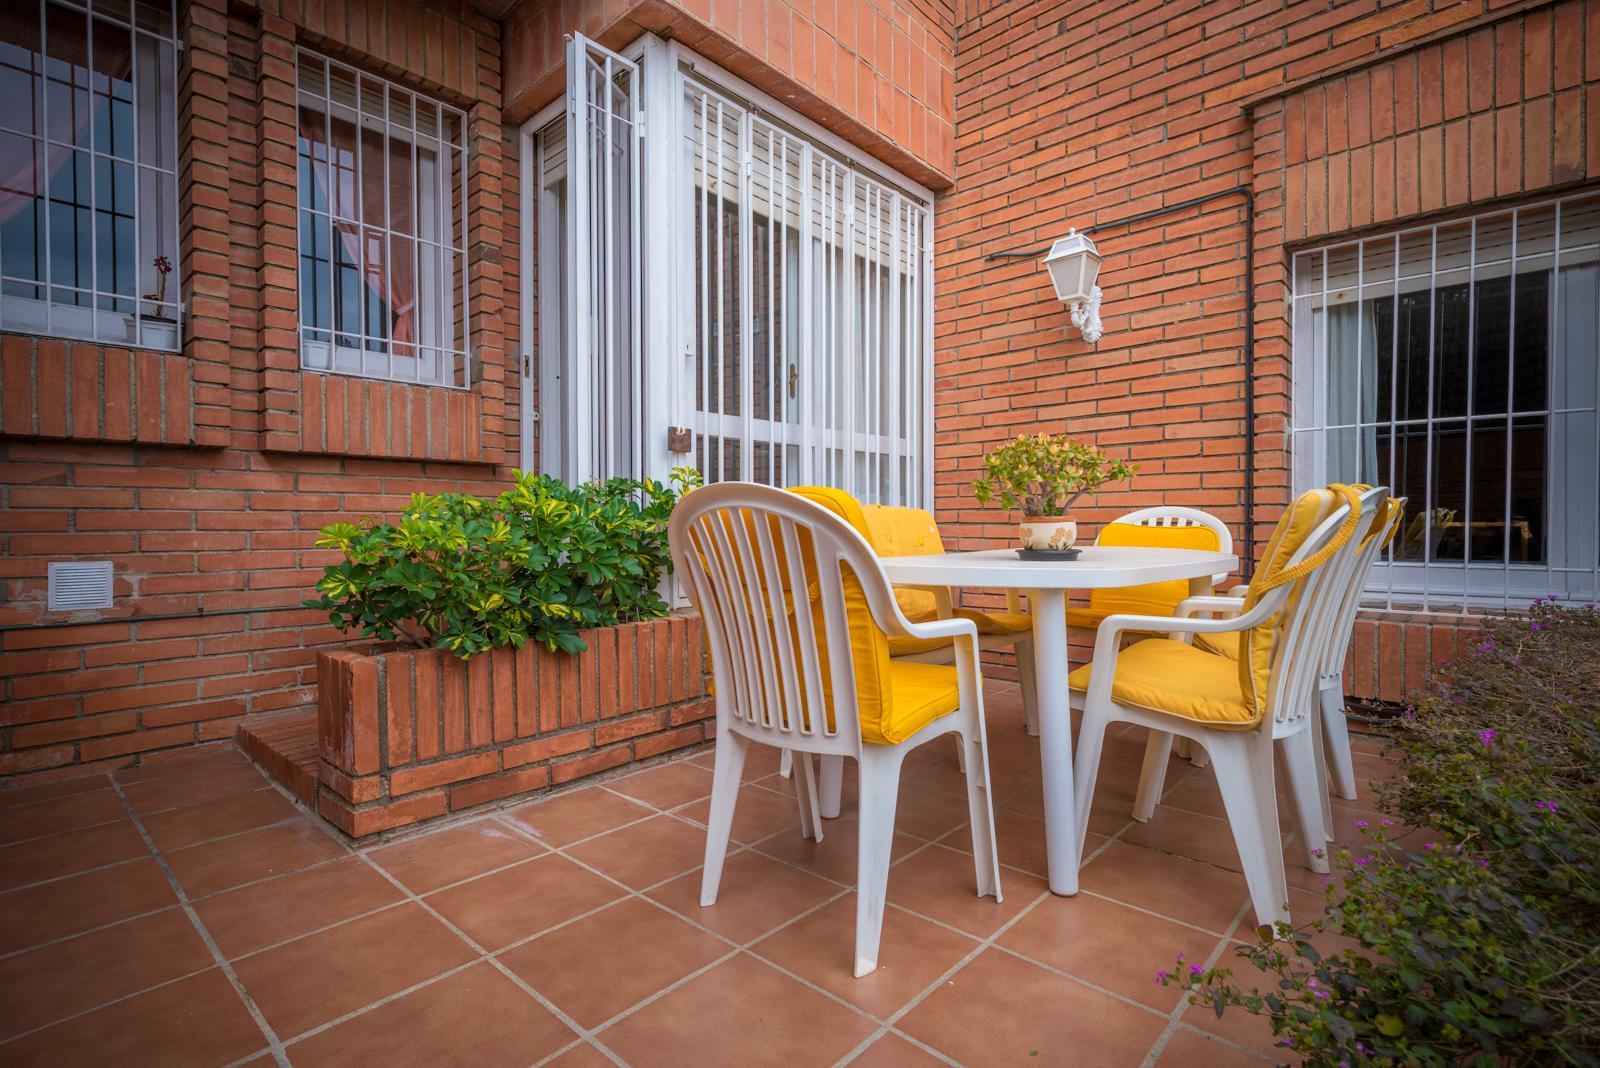 74341 Townhouse for sale in Gràcia, Vallcarca i els Penitents 24